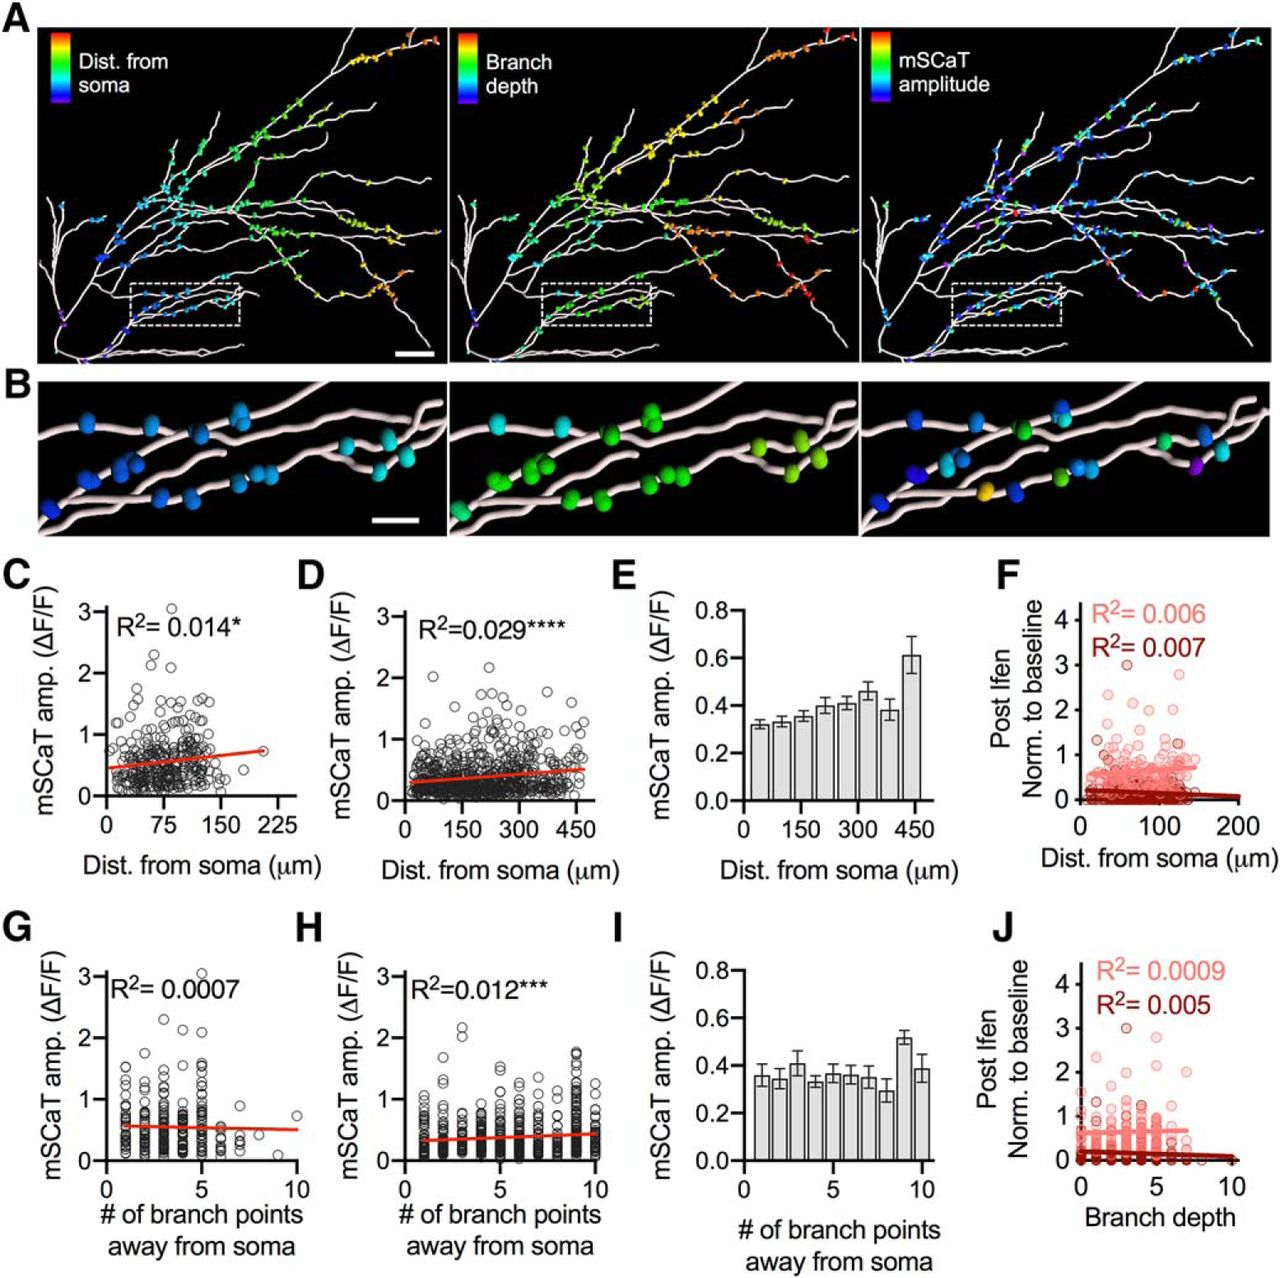 Properties of Individual Hippocampal Synapses Influencing